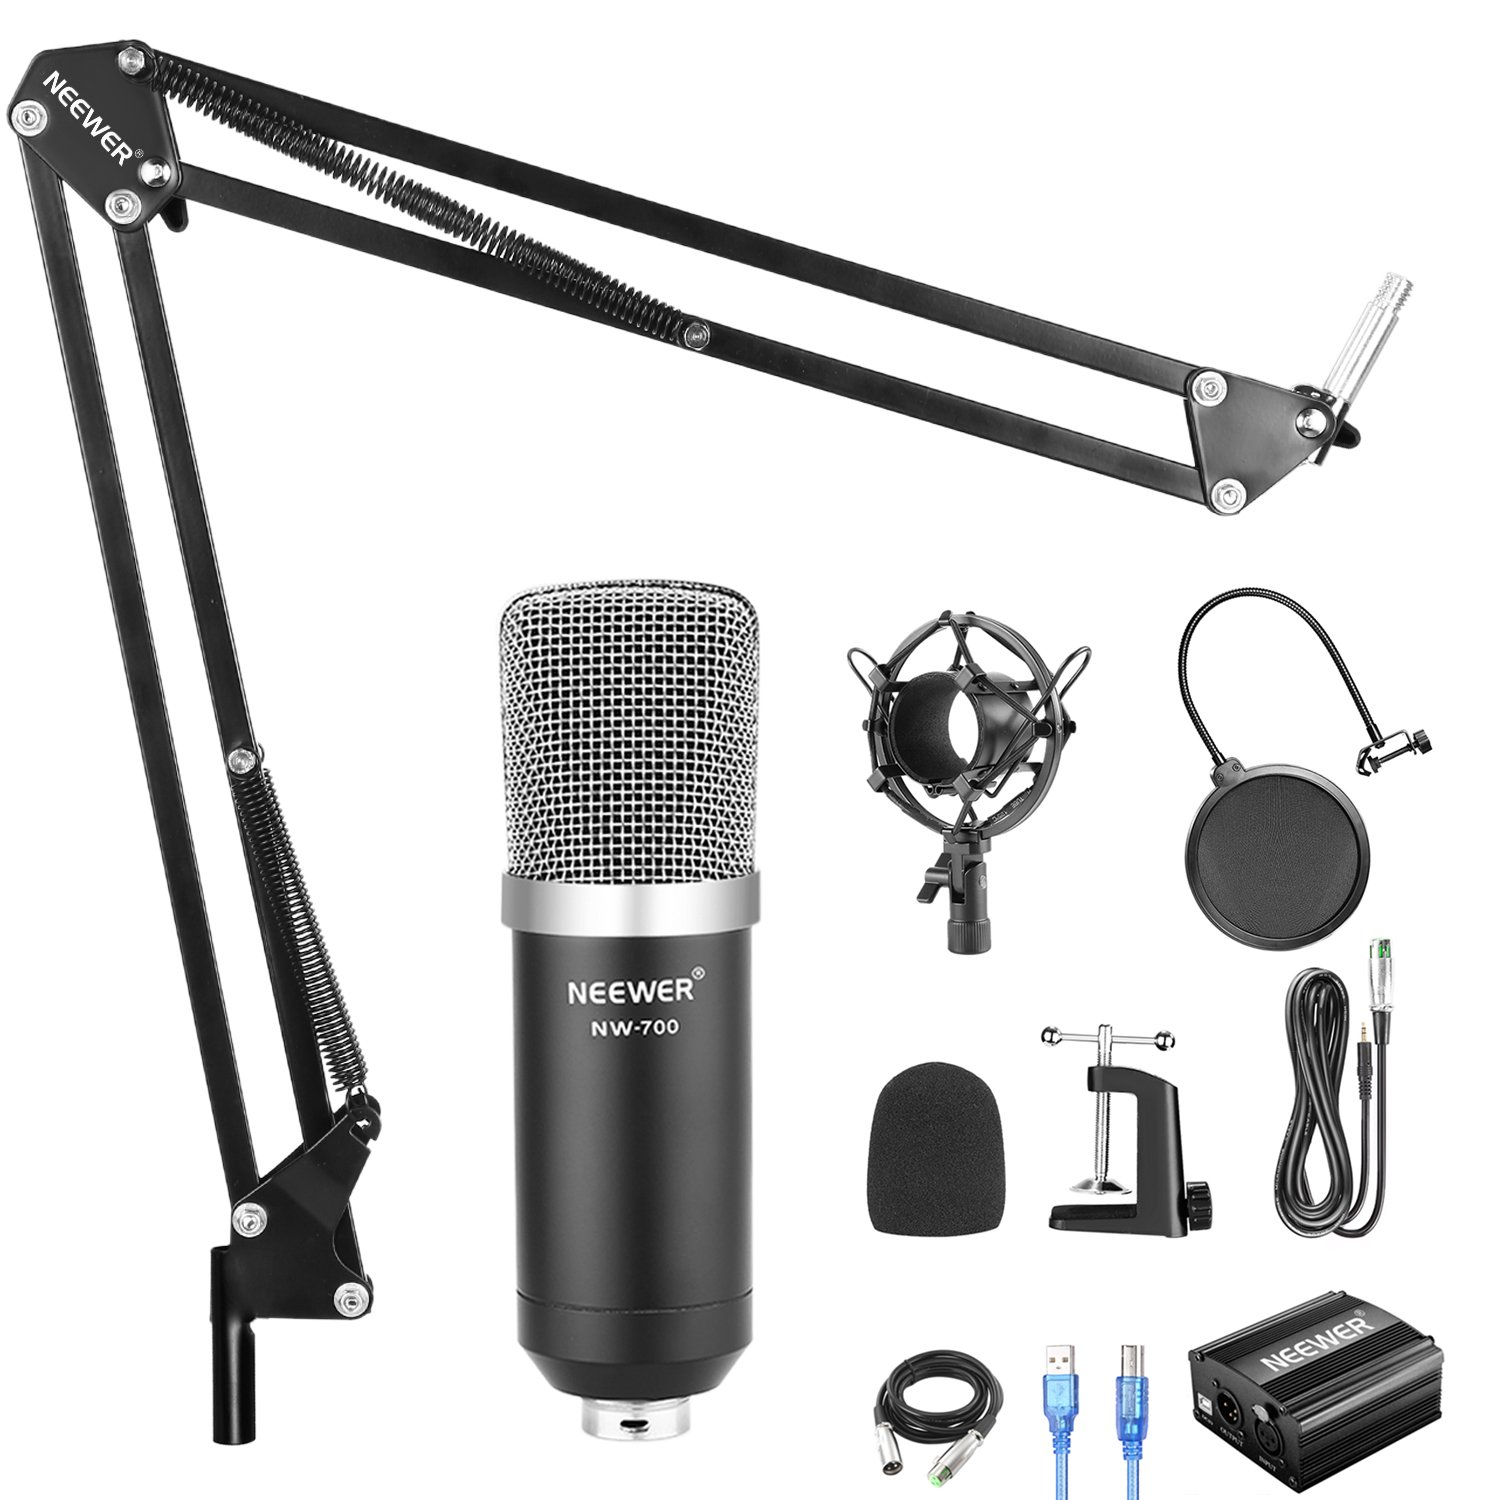 Neewer NW-700 Condenser Microphone Kit with USB 48V Phantom Power Supply, NW-35 Suspension Scissor Arm Stand, Shock Mount, Pop Filter for Home Studio Recording Broadcast YouTube Live Periscope(Black) by Neewer (Image #2)